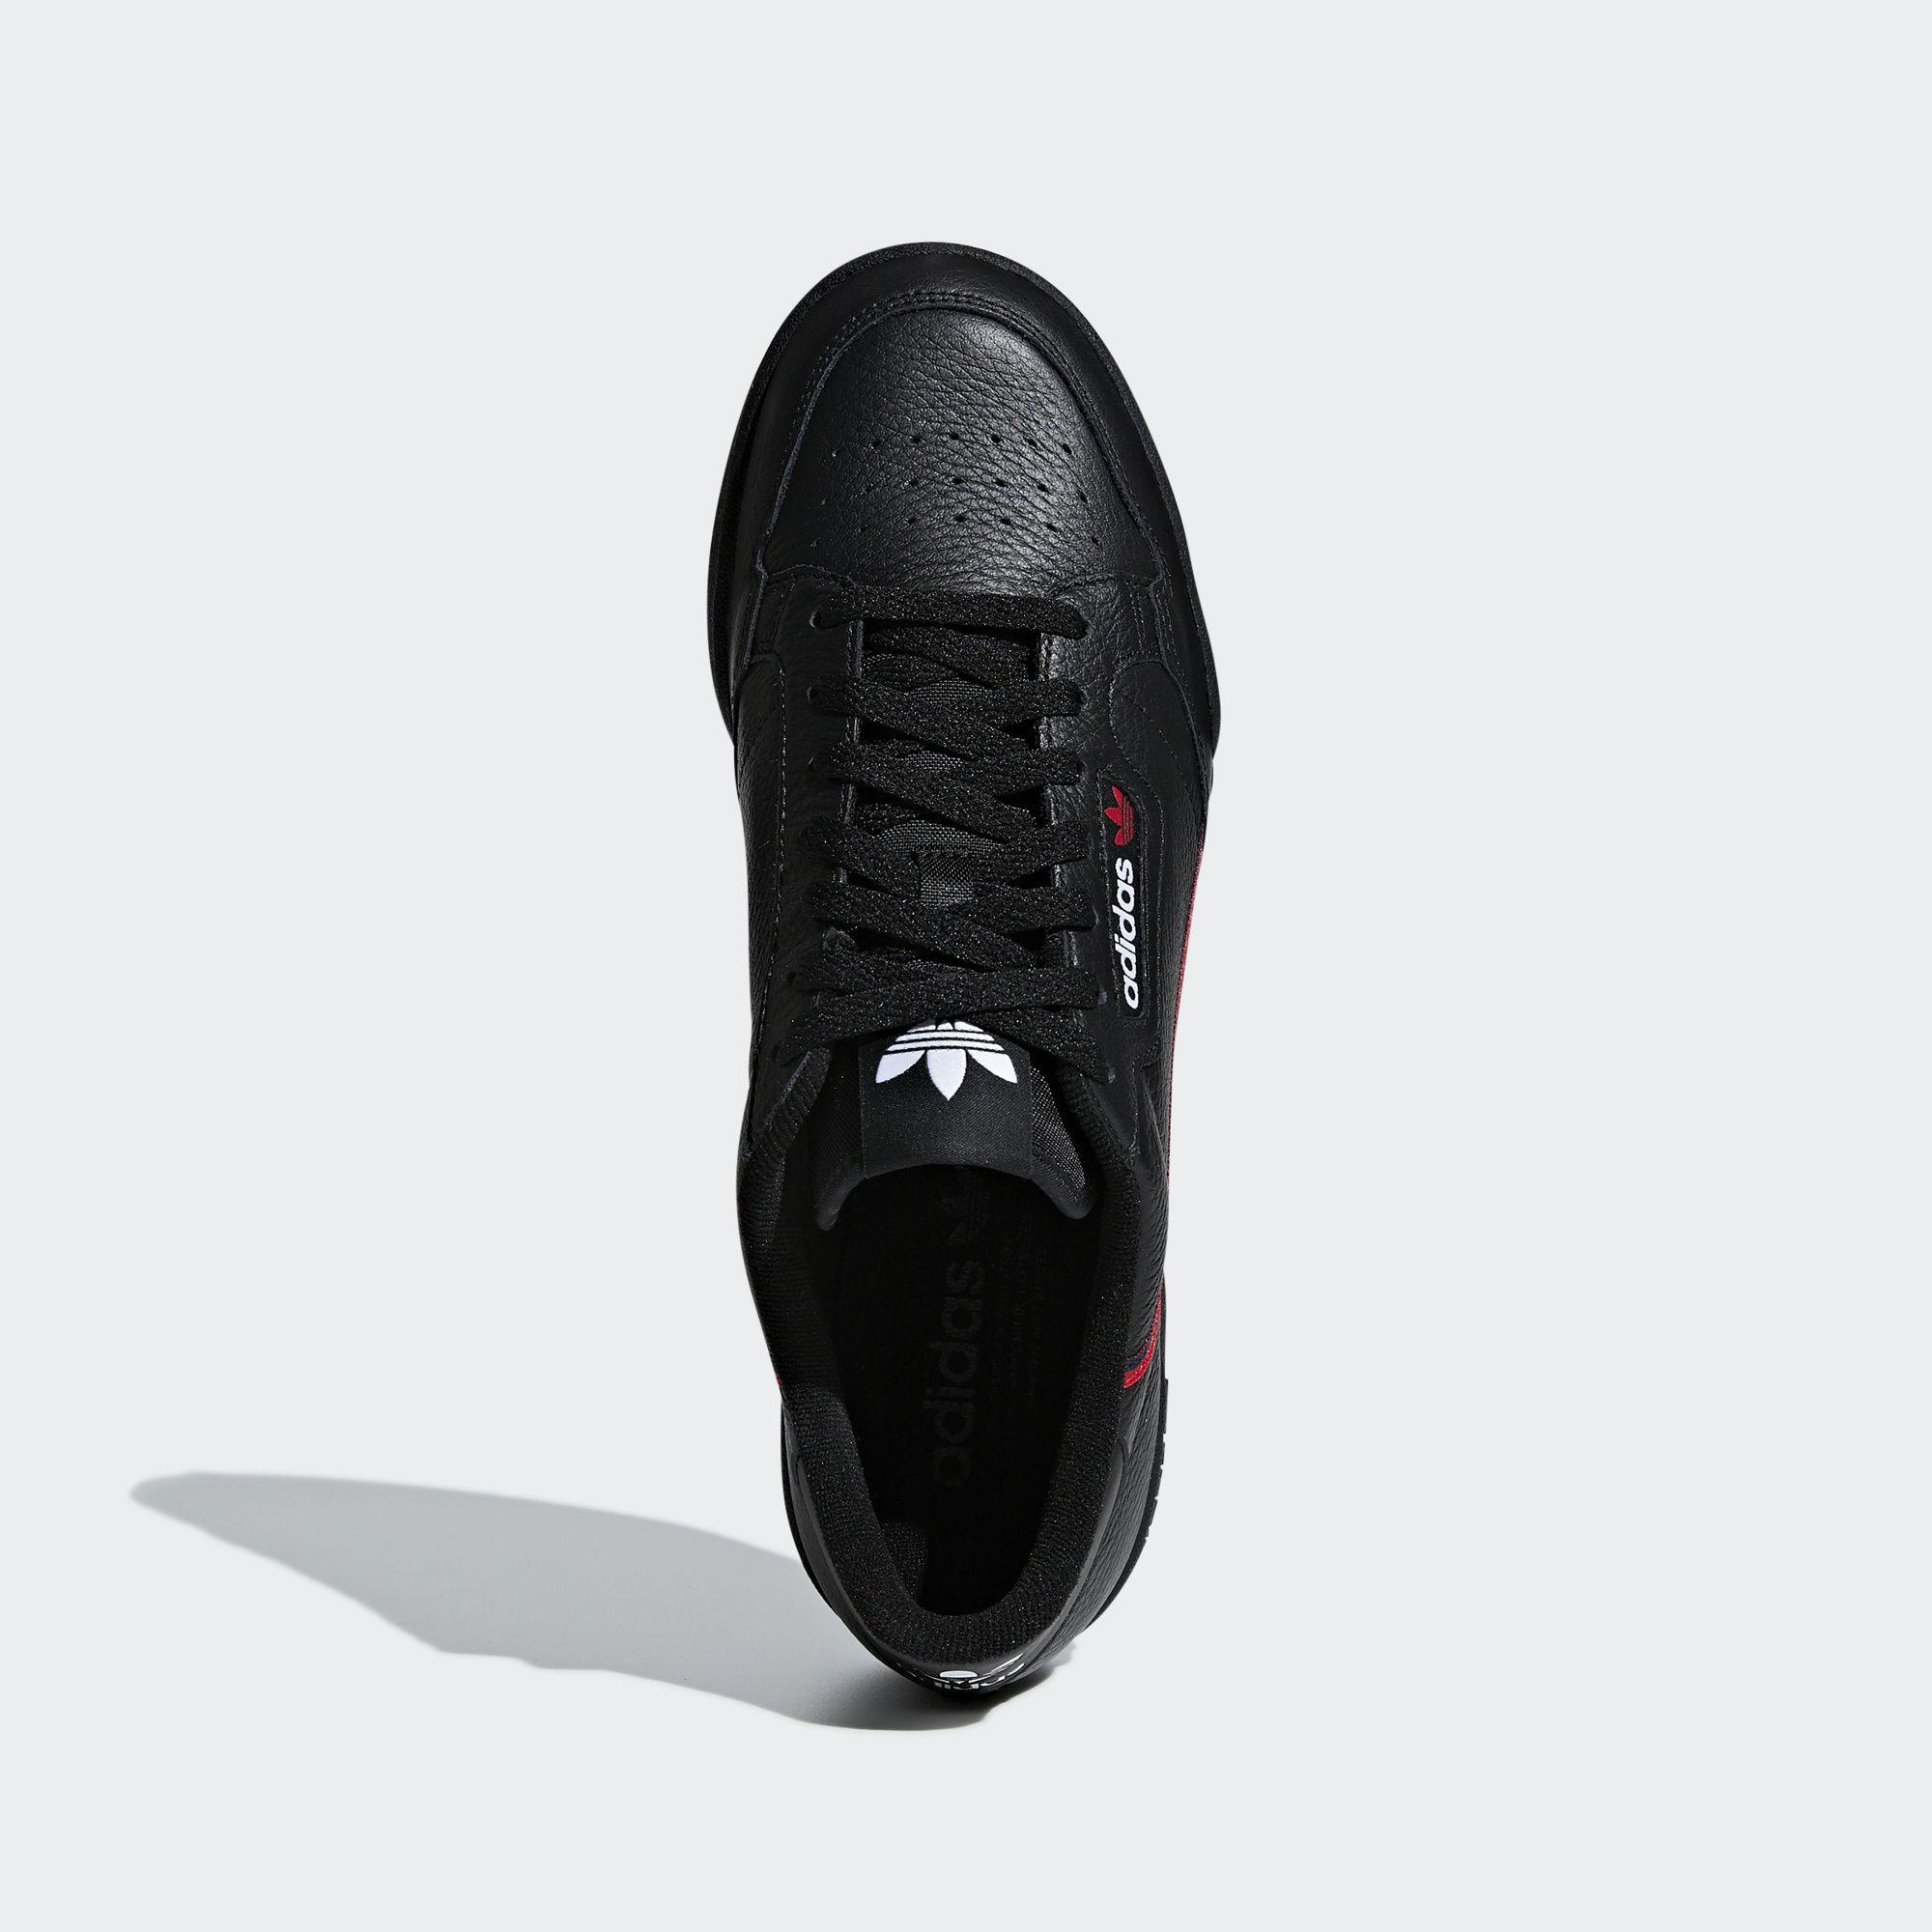 official photos 6d89b 7bc4d Adidas Originals - Adidas Continental 80 Core Black  Scarlet  Collegiate  Navy for Men -. View fullscreen